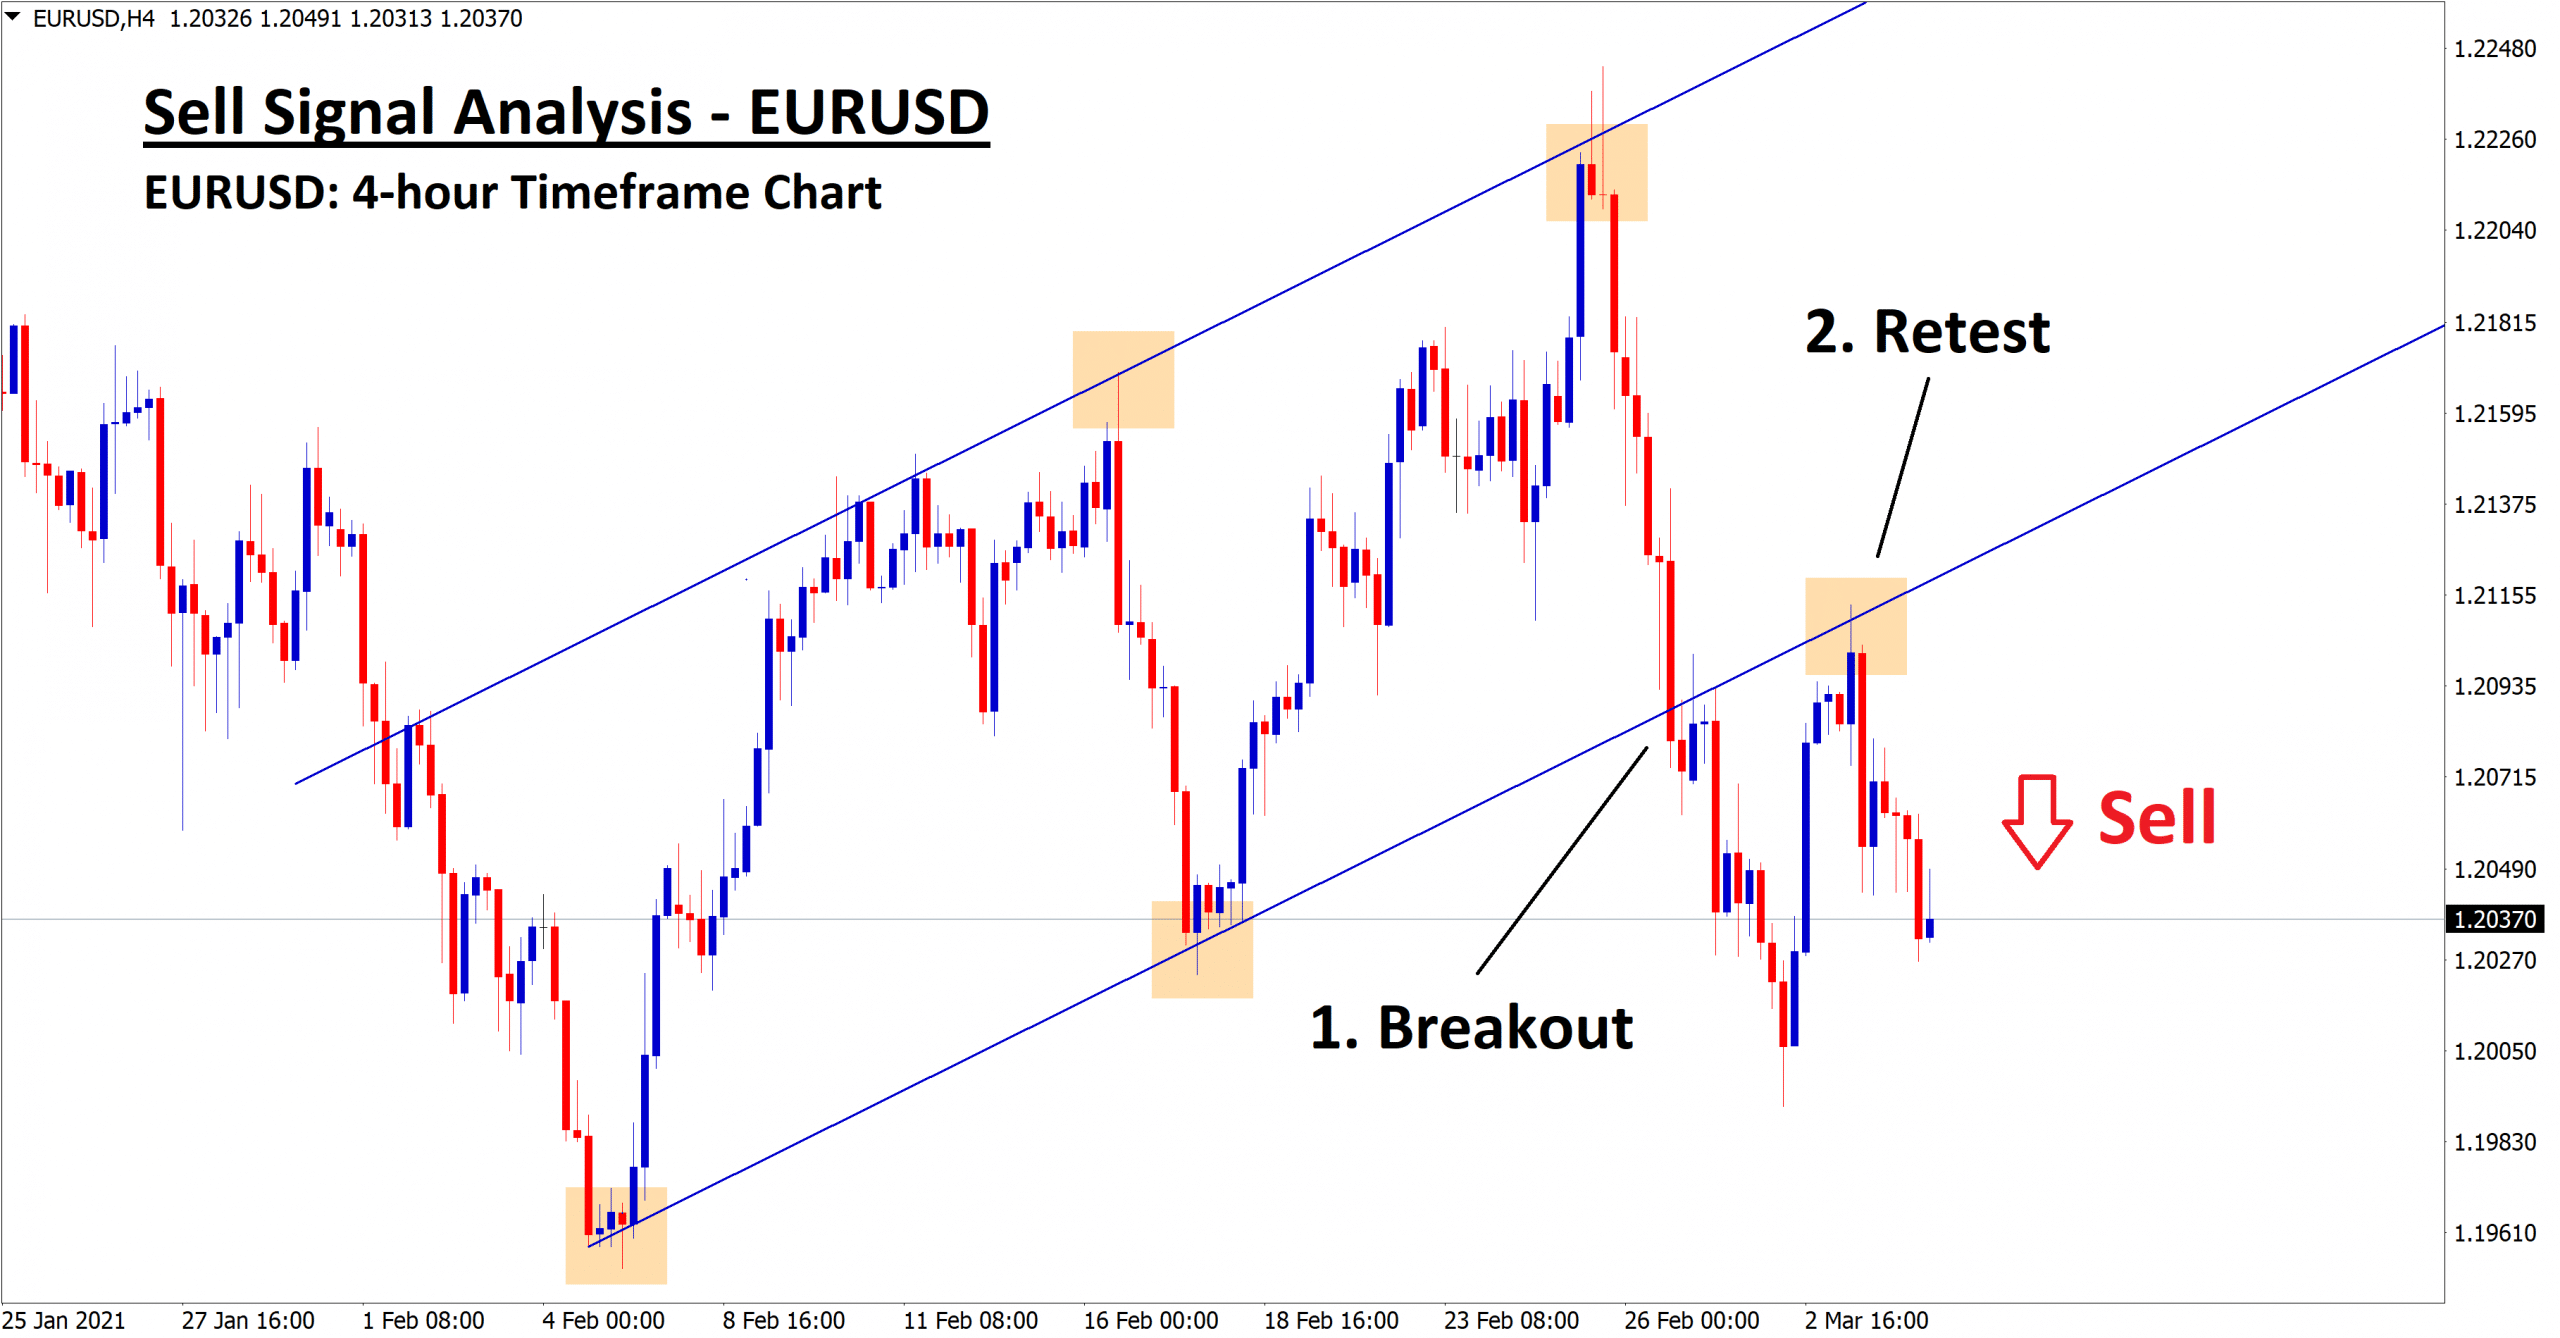 eurusd sell signal analysis by forexgdp team